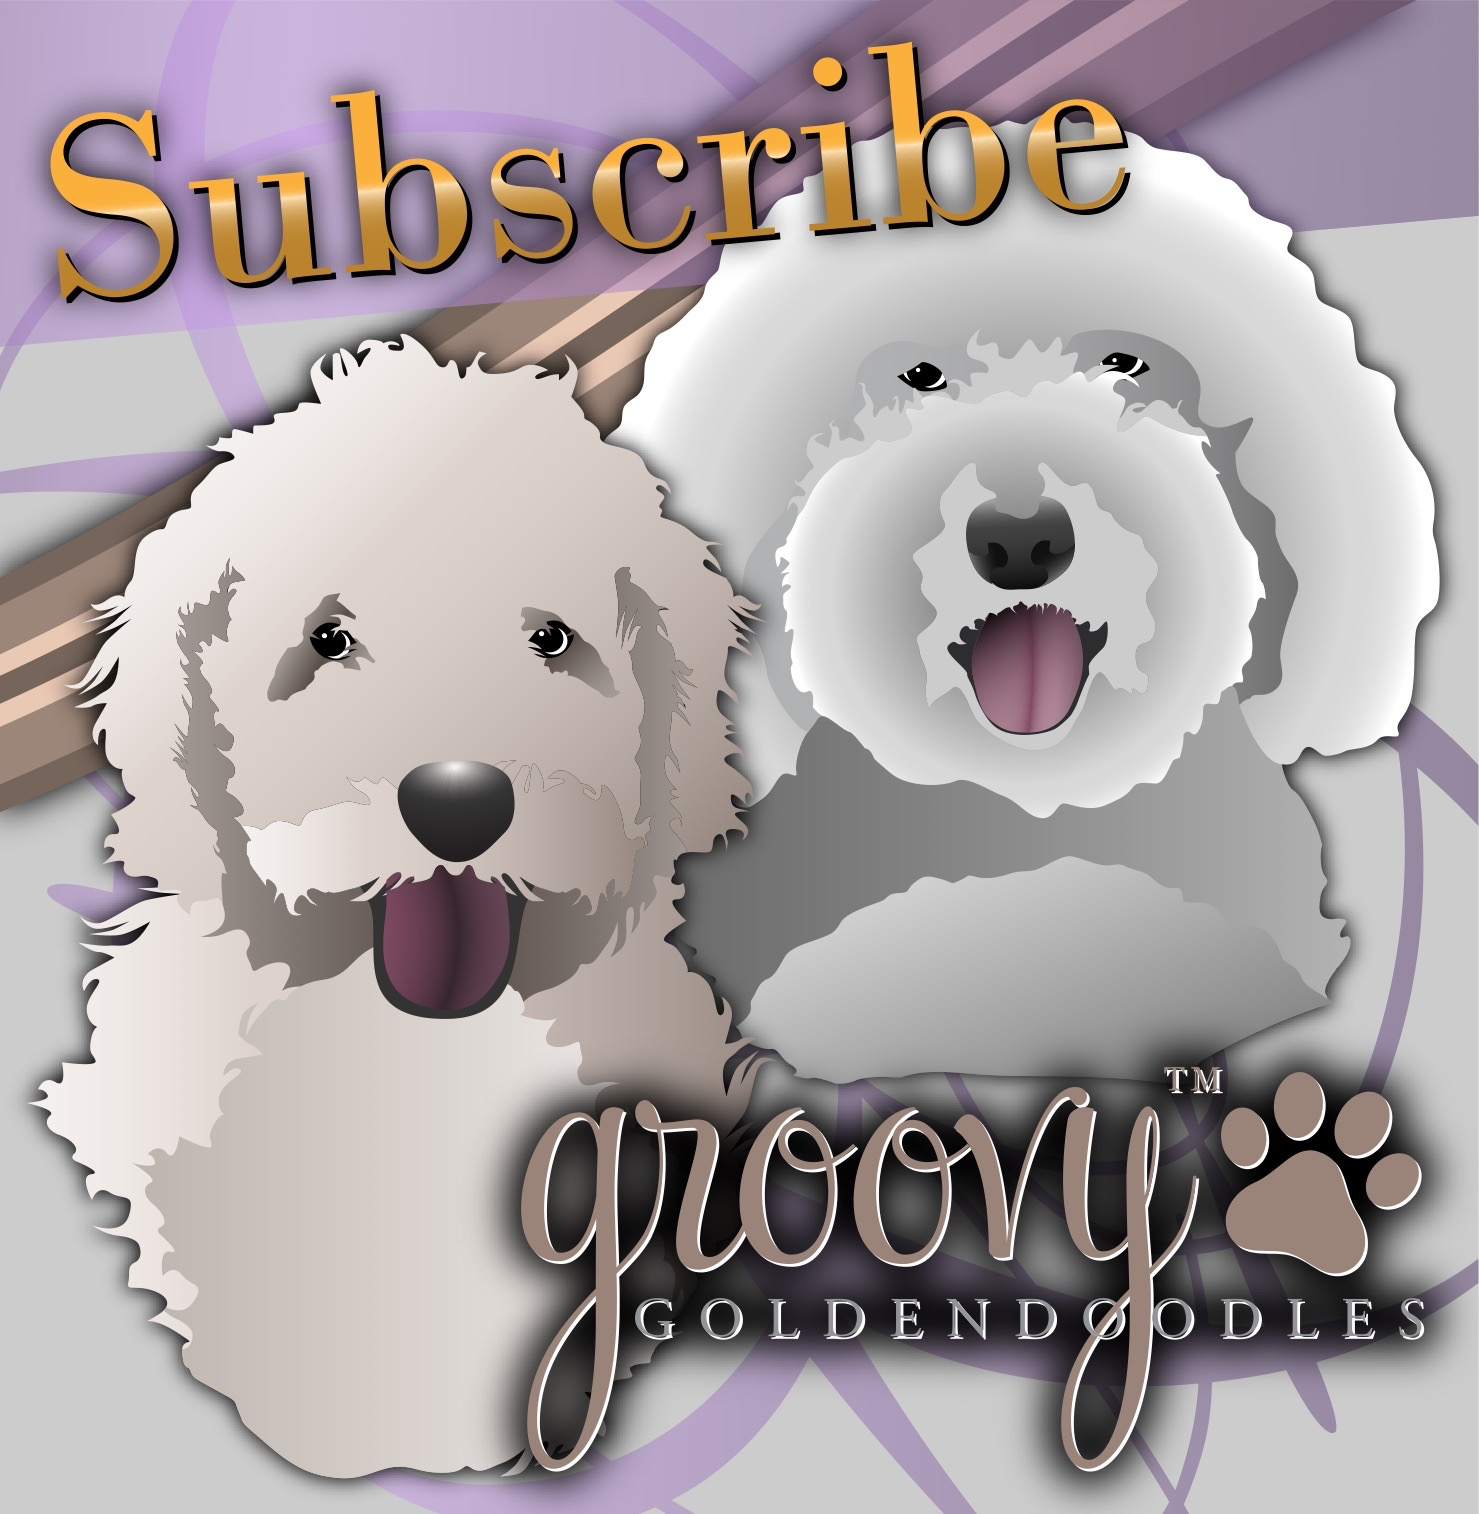 STRAIGHT COAT GOLDENDOODLES - Groovy Goldendoodles™